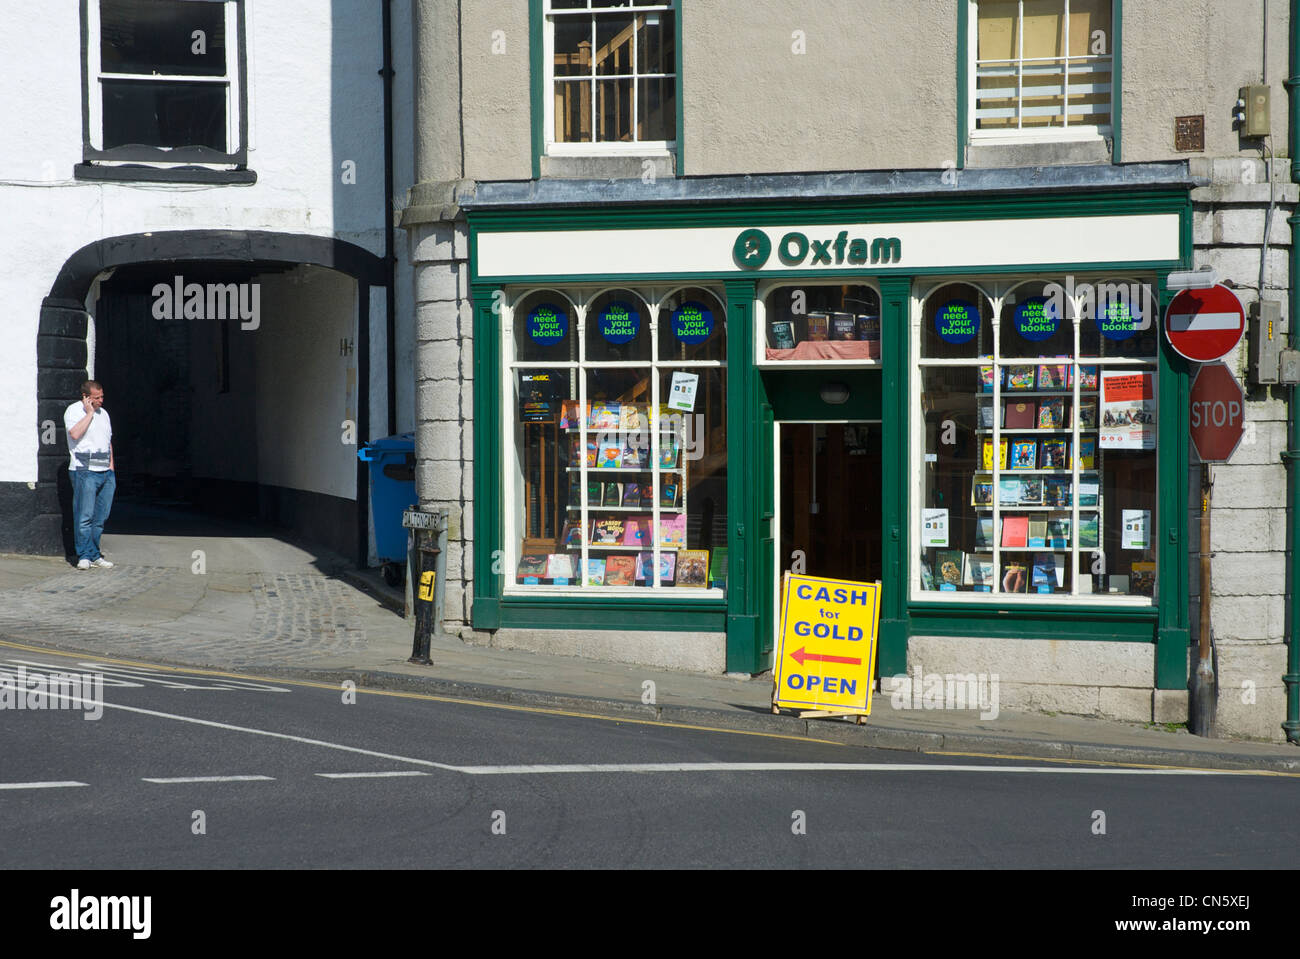 Oxfam shop in Ulverston, Cumbria, with sign reading cash for gold - Stock Image